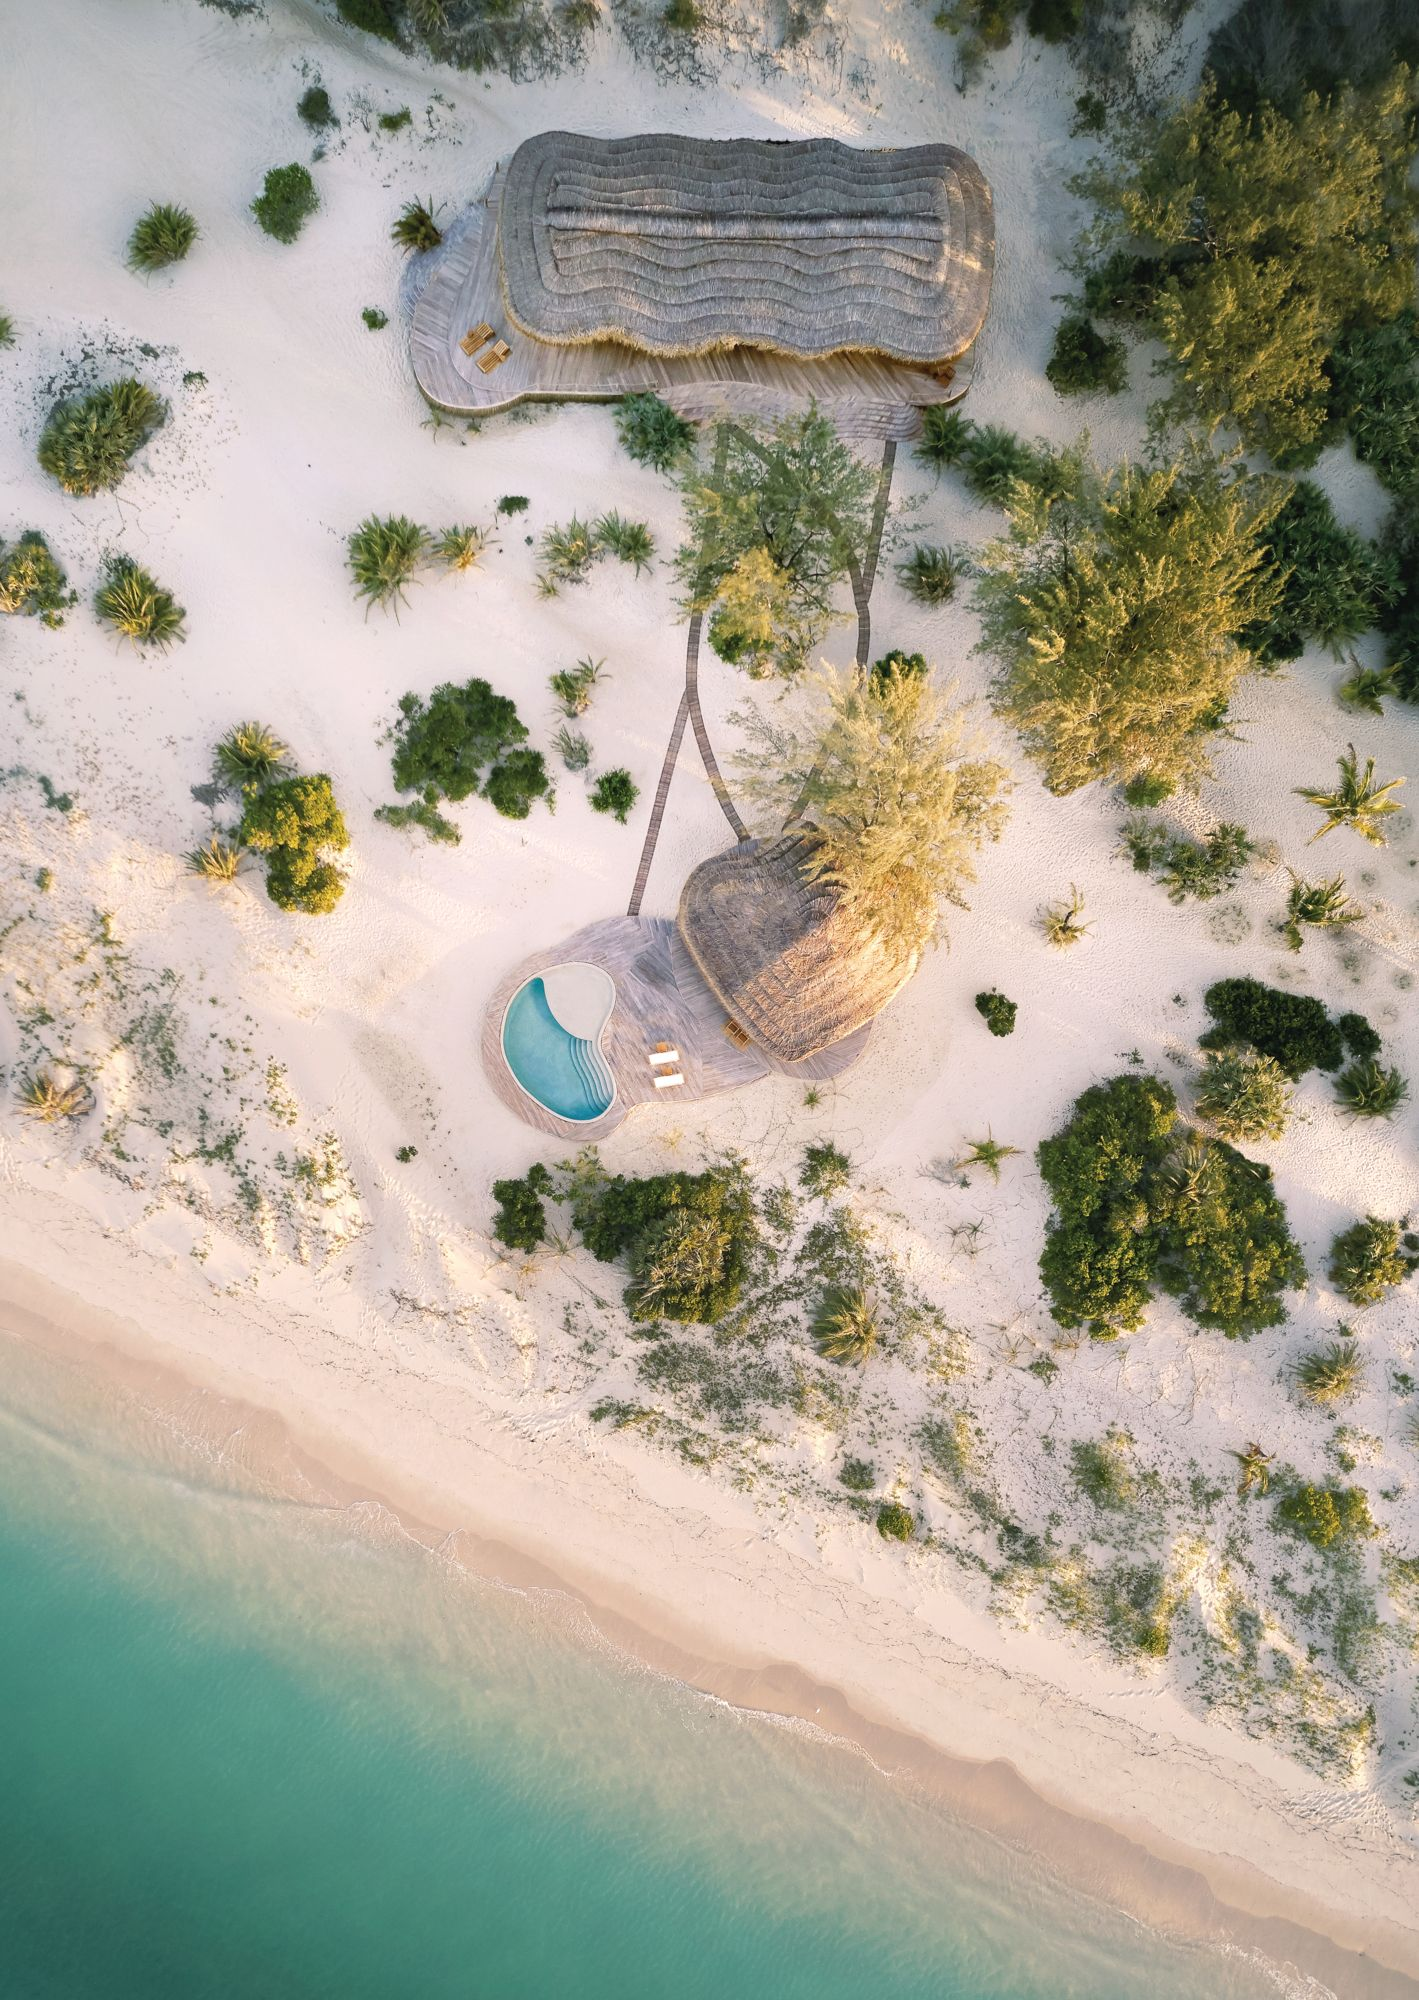 3 Luxury Tropical Hotels to Add to Your Post-Pandemic Travel Bucket List